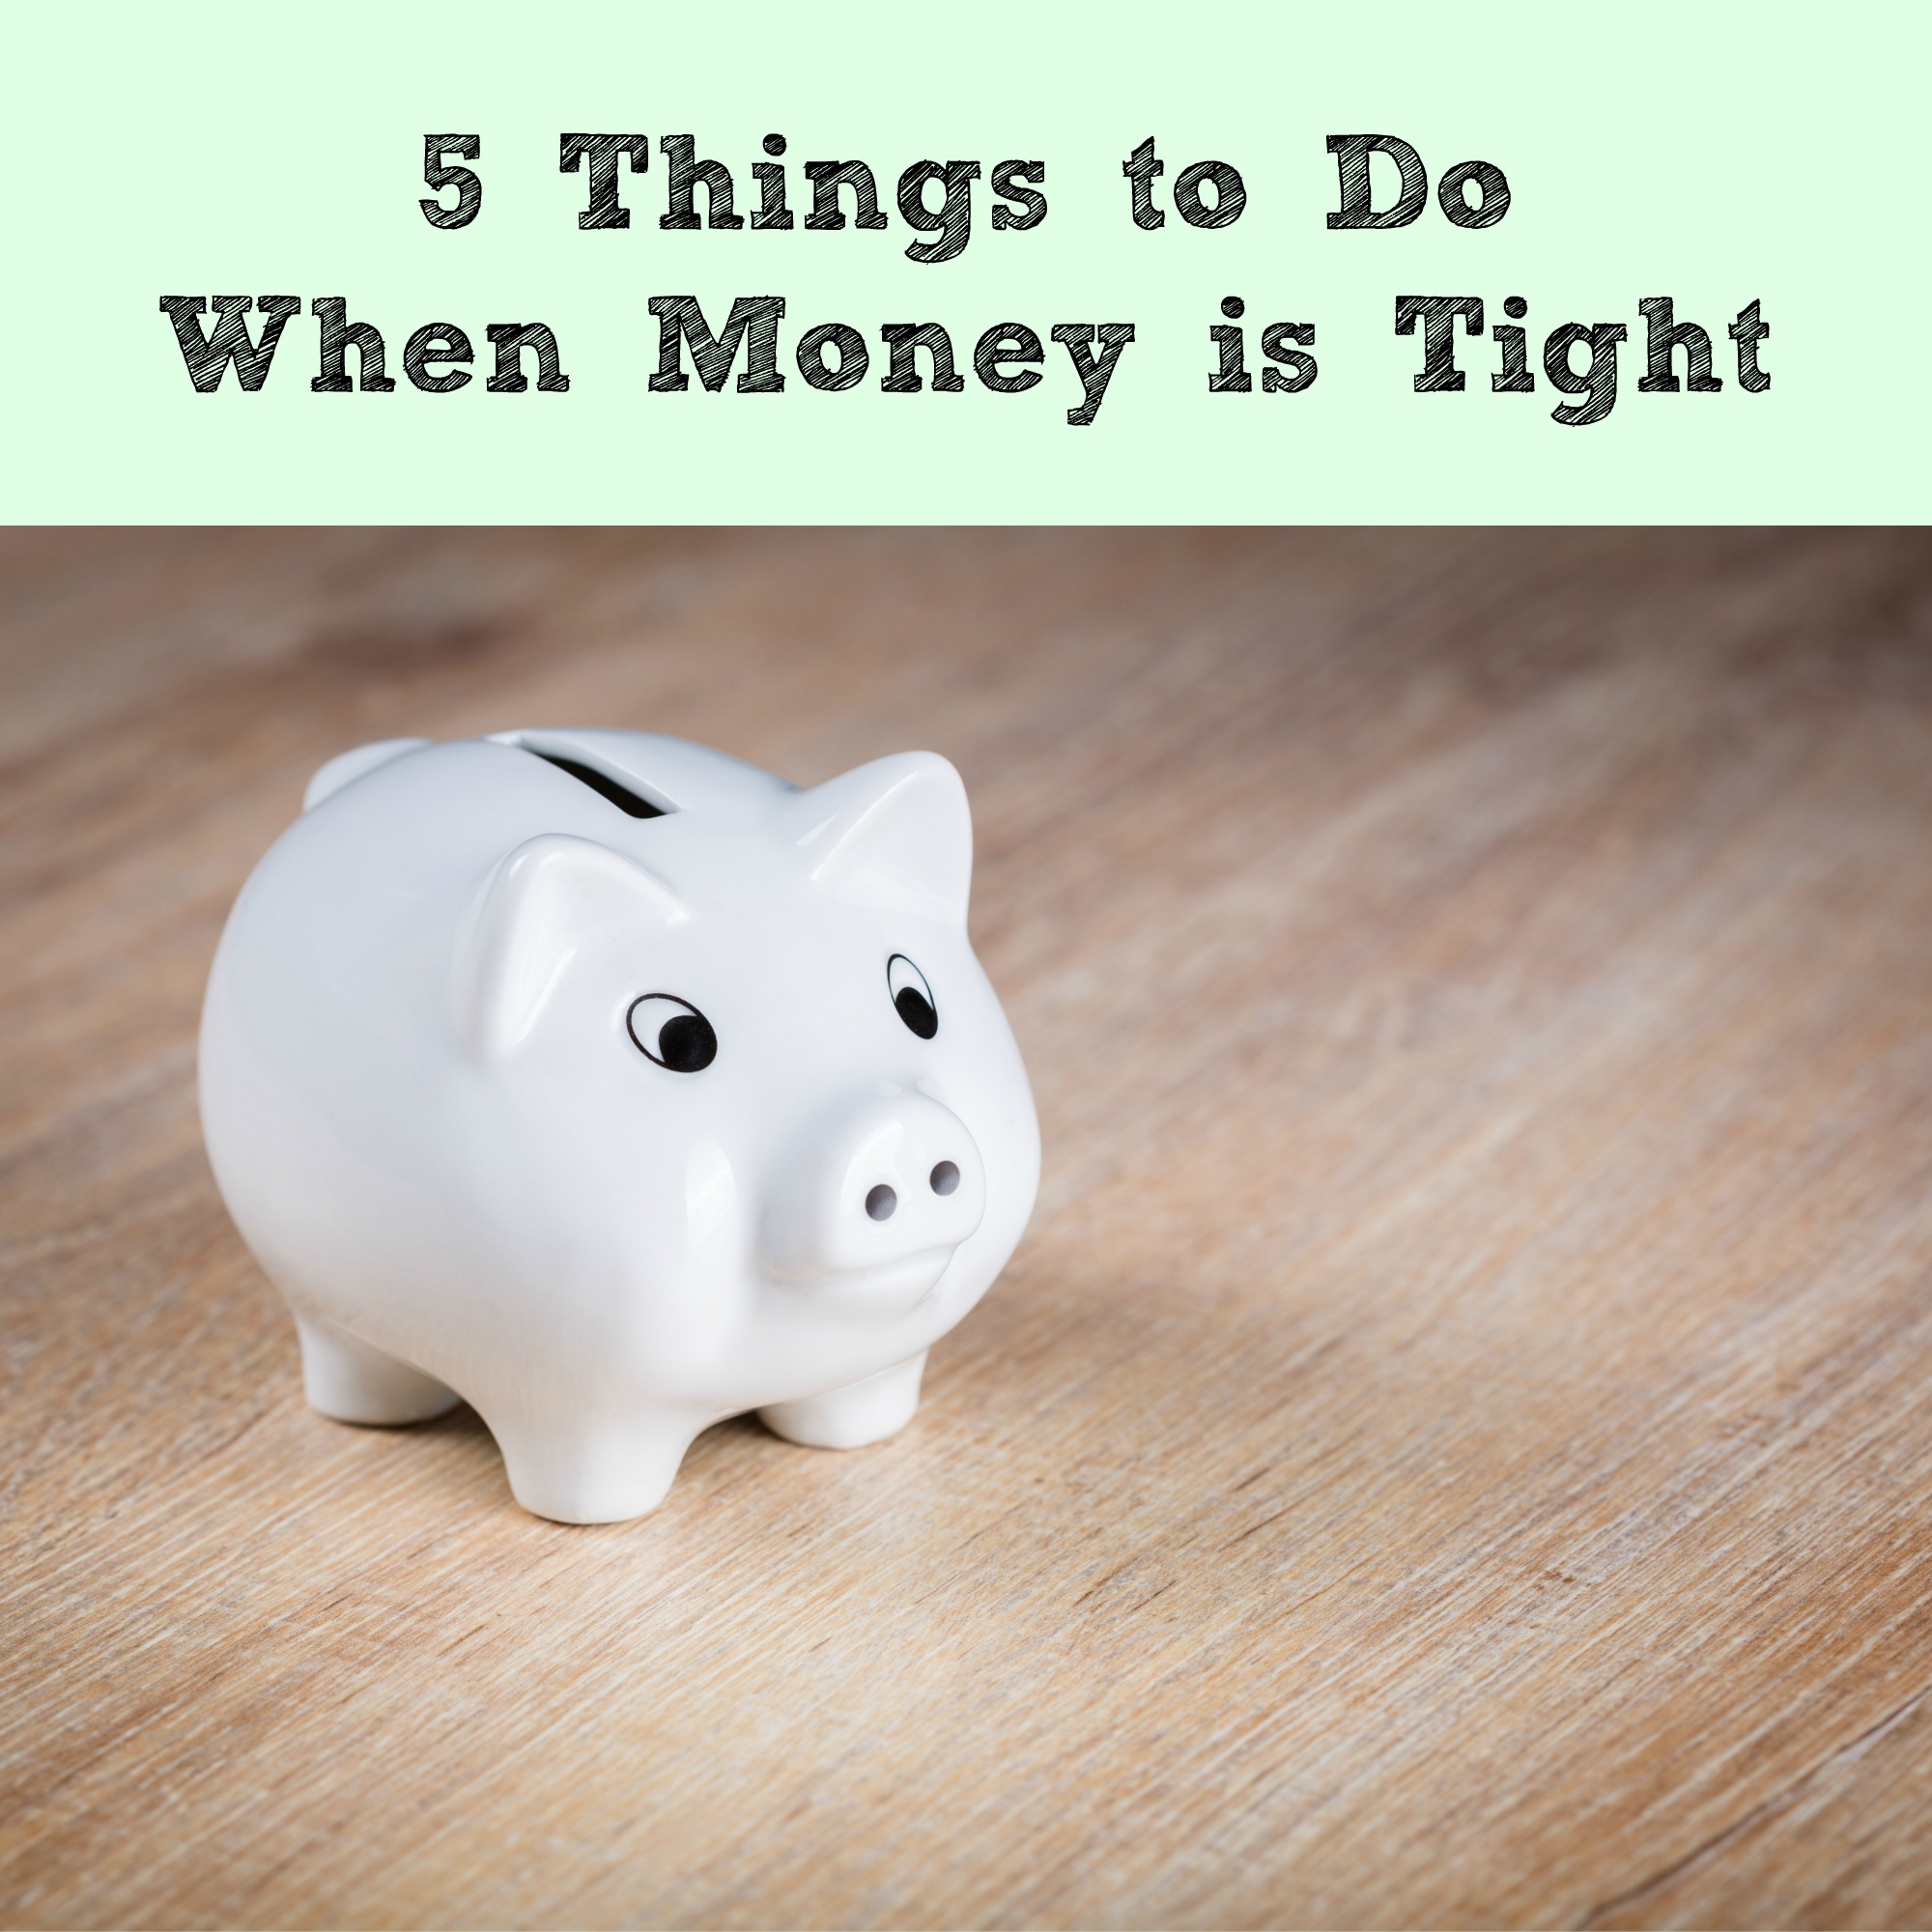 5 Things to Do When Money is Tight